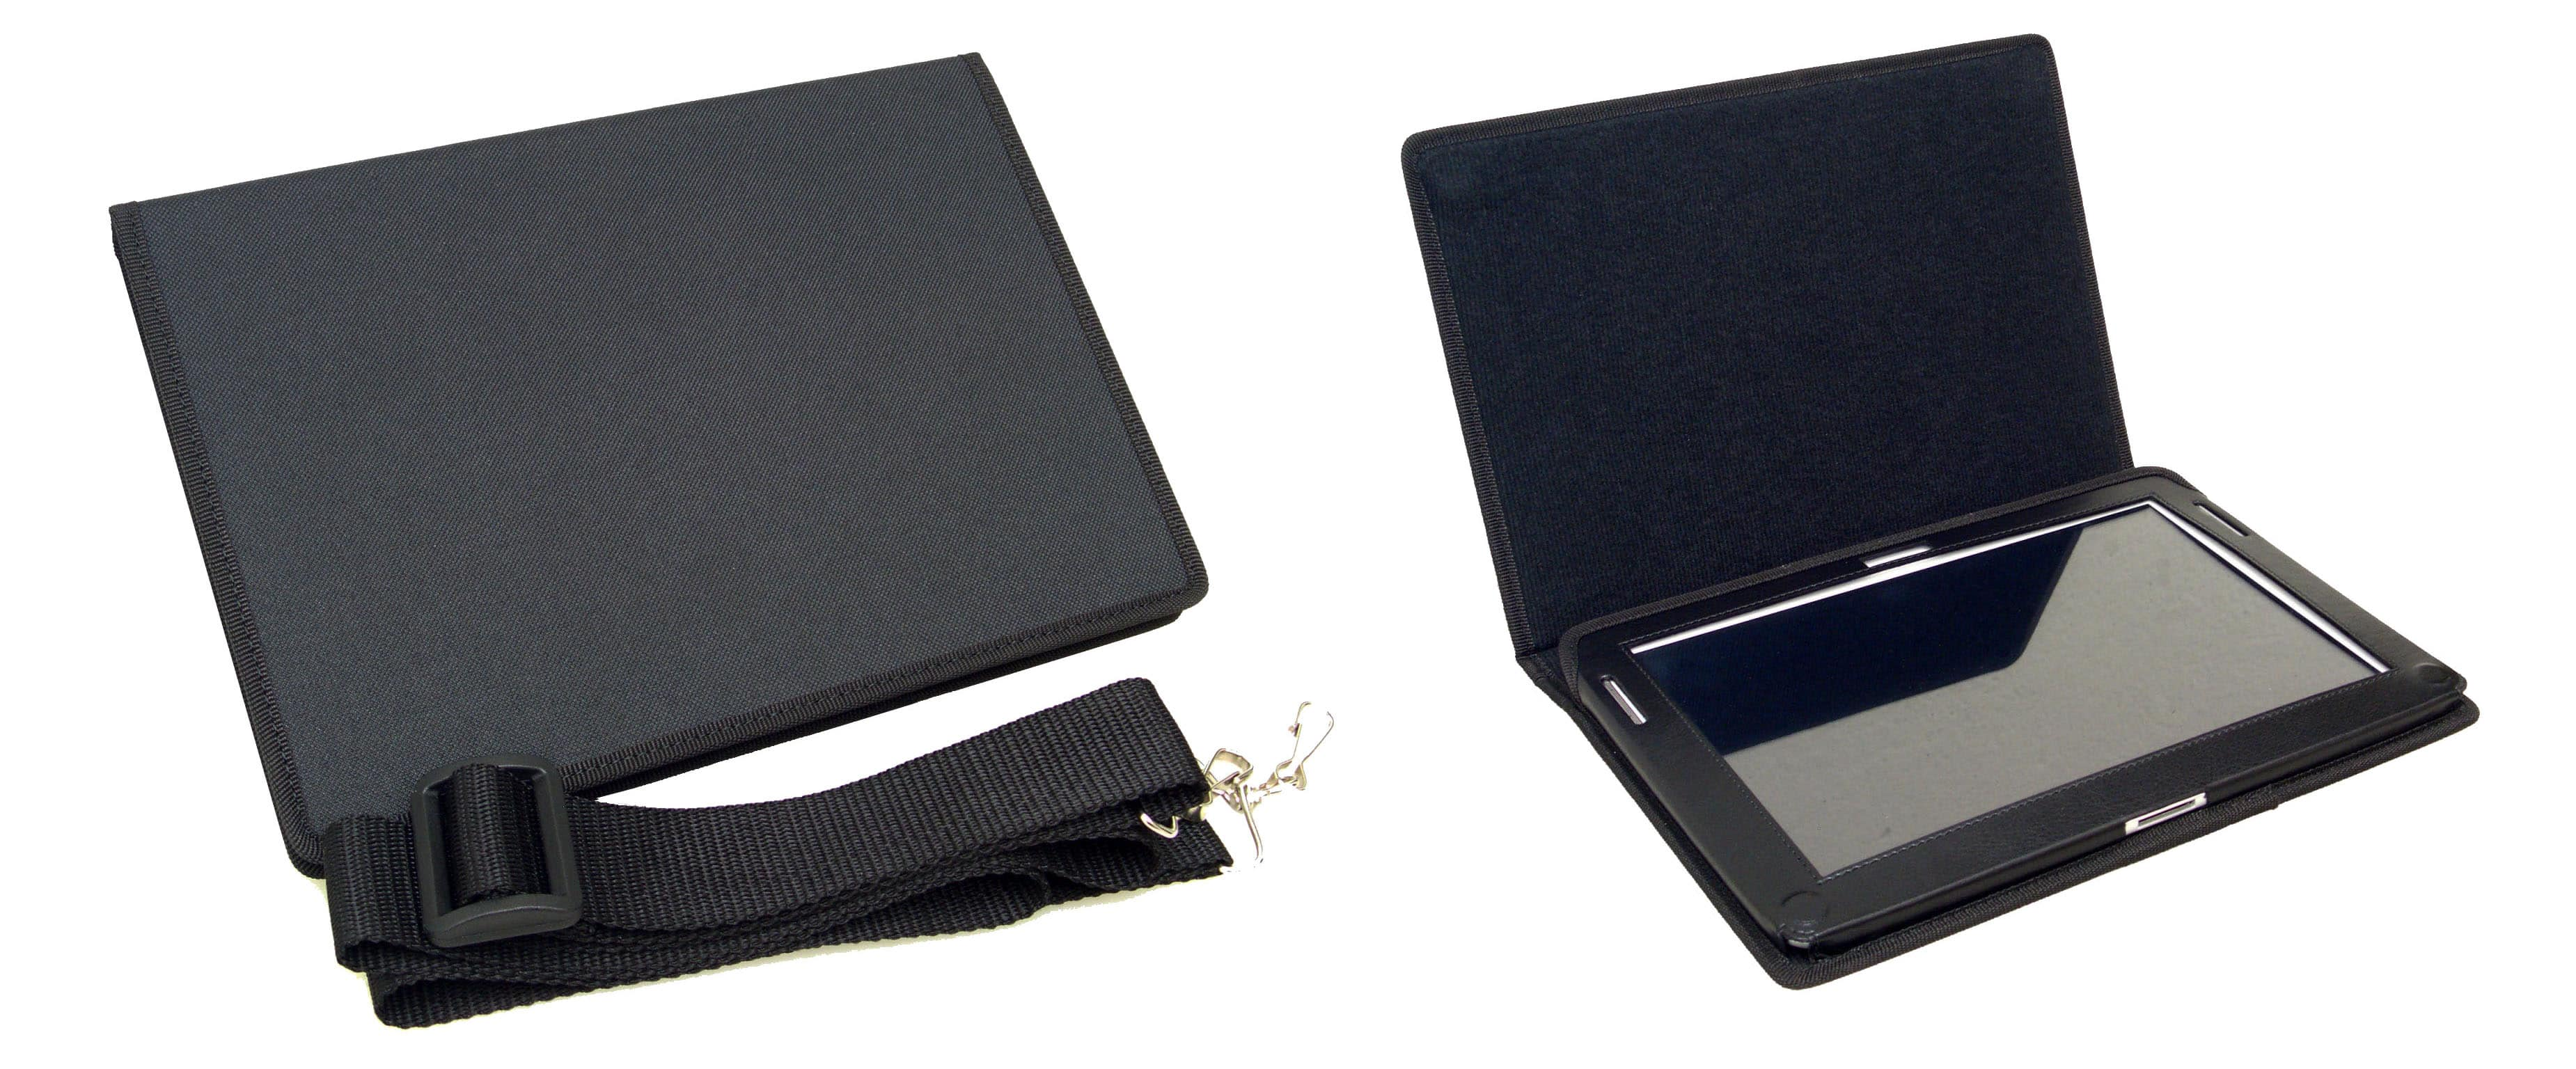 Funda Tablet Galaxy Note 10 Melgar para uso industrial y comercial